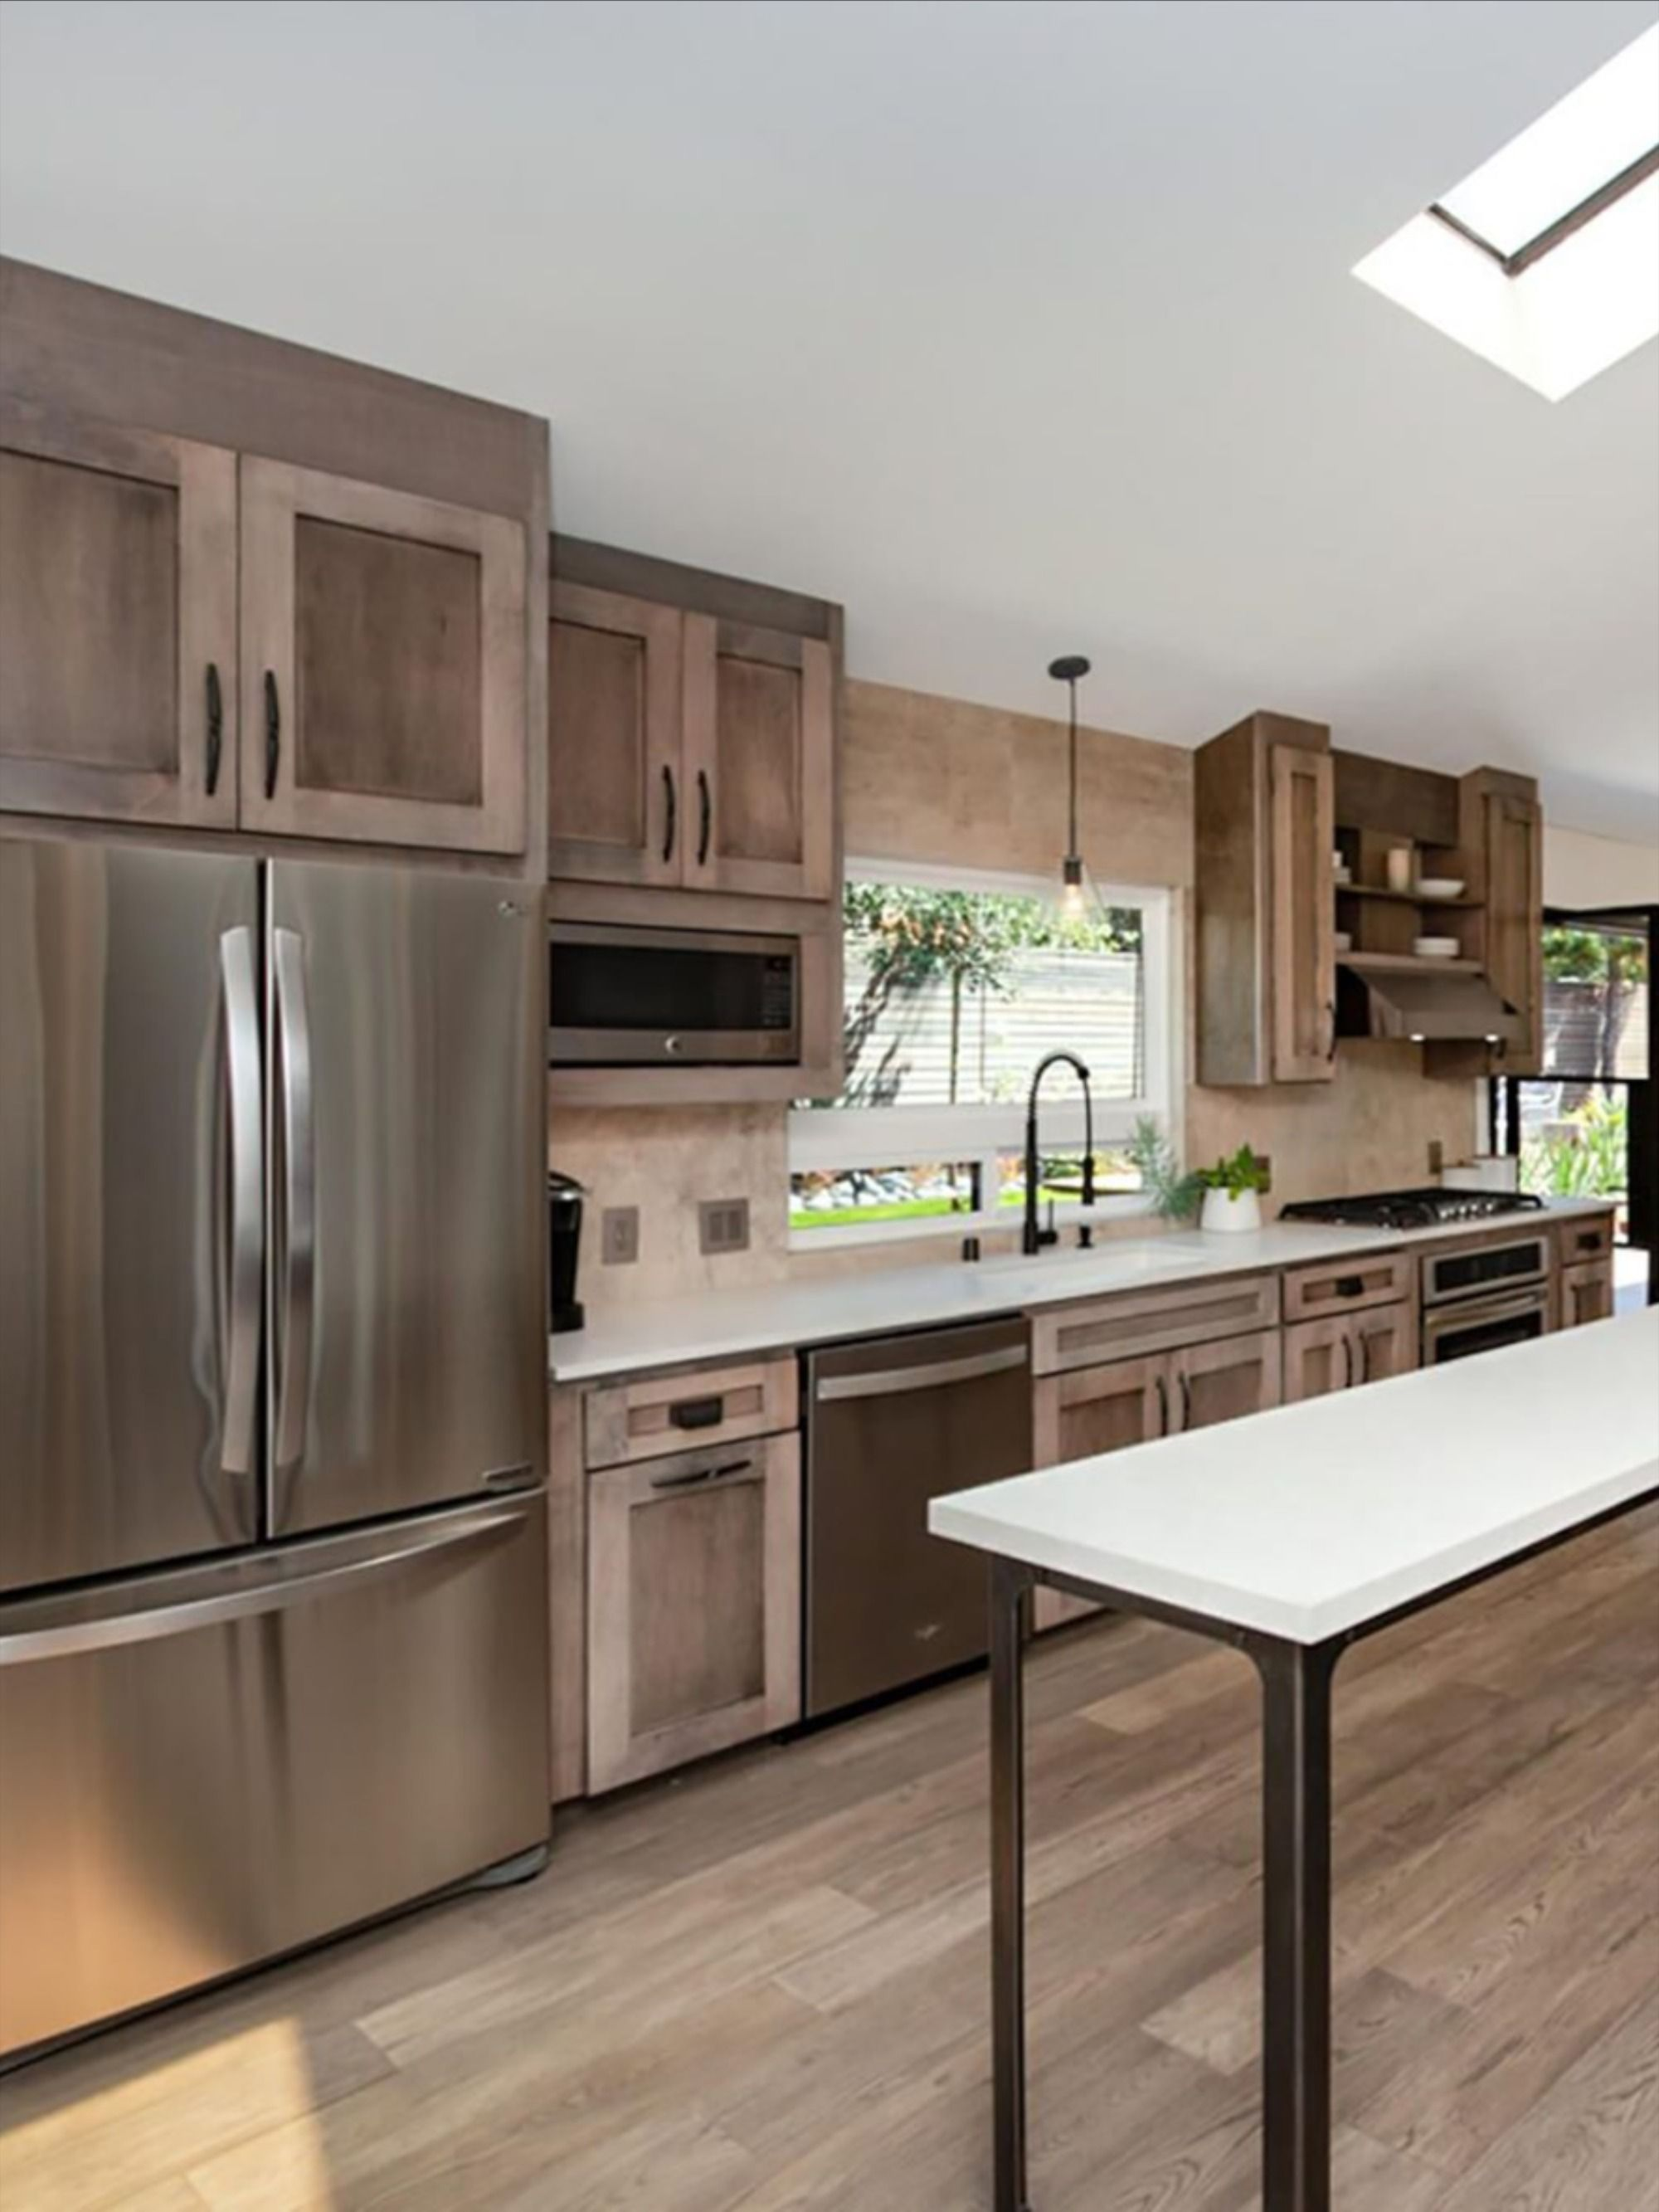 Distinctive Interiors The Perfect Accent To Any Home Birch Kitchen Cabinets Solid Wood Kitchen Cabinets Birch Cabinets